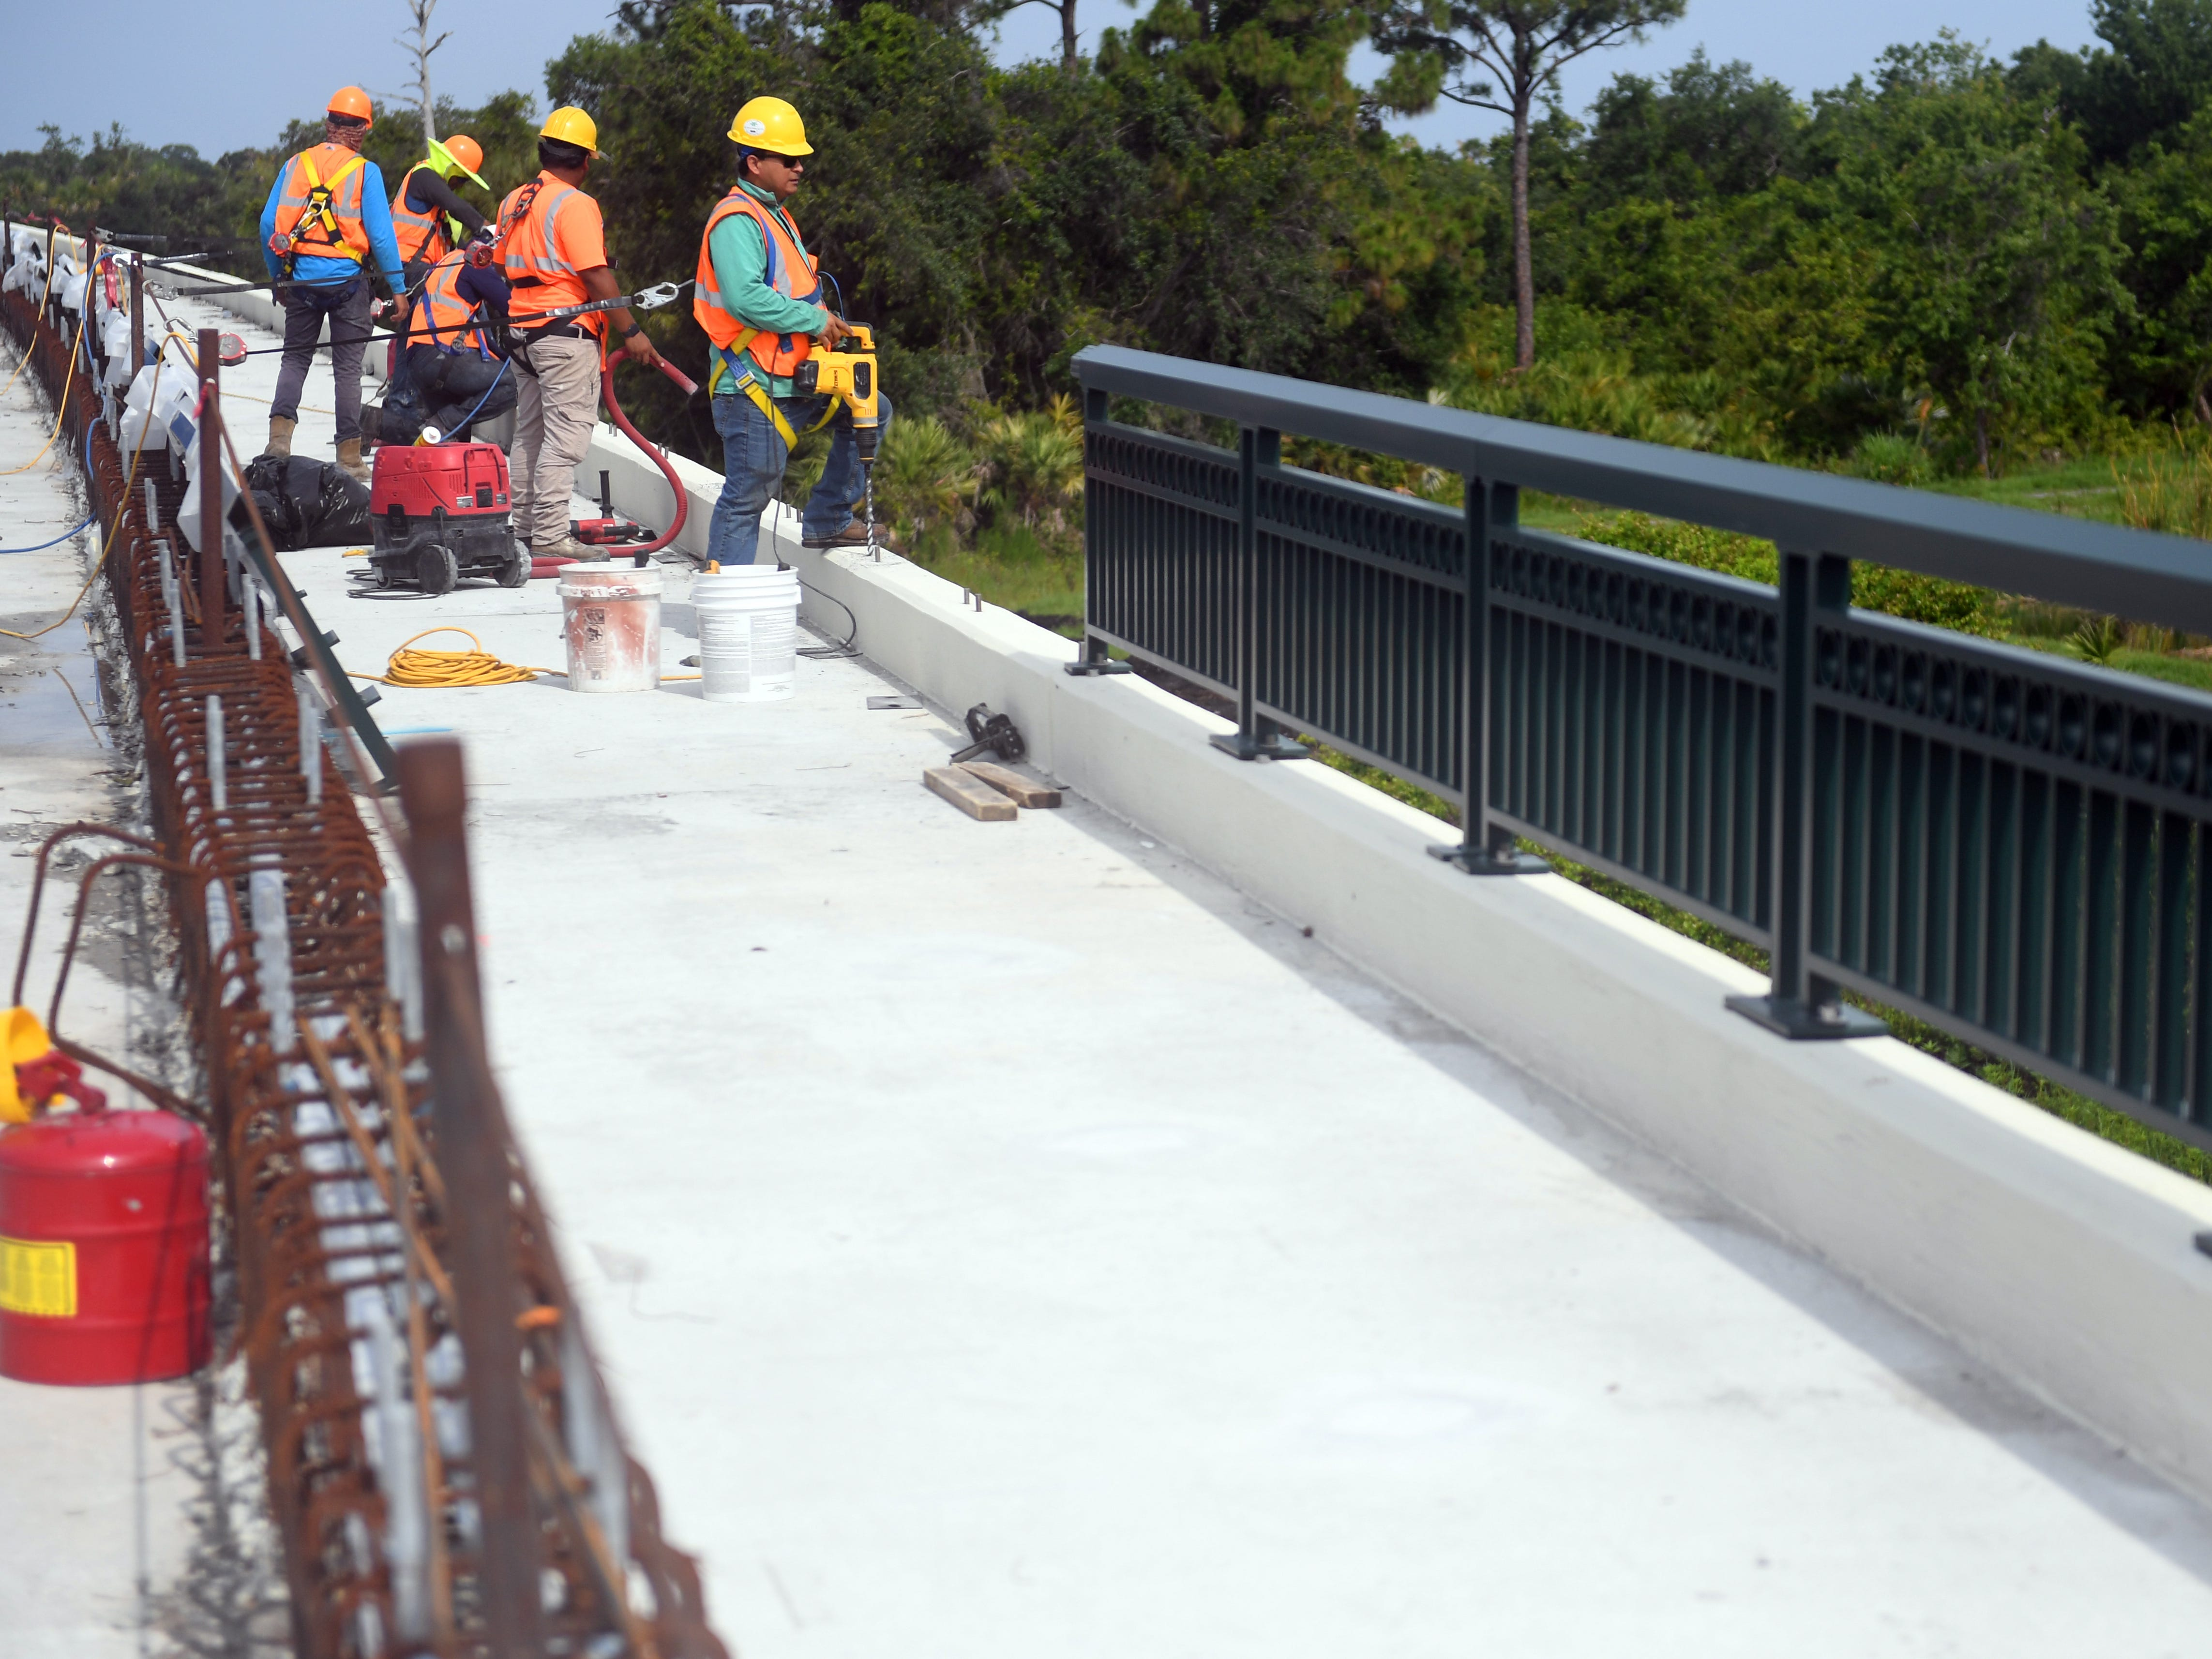 Construction on the Crosstown Parkway bridge is nearing completion and is slated to open to the public on Sept. 28. The City of Port St. Lucie is planning a community block party to celebrate the event.